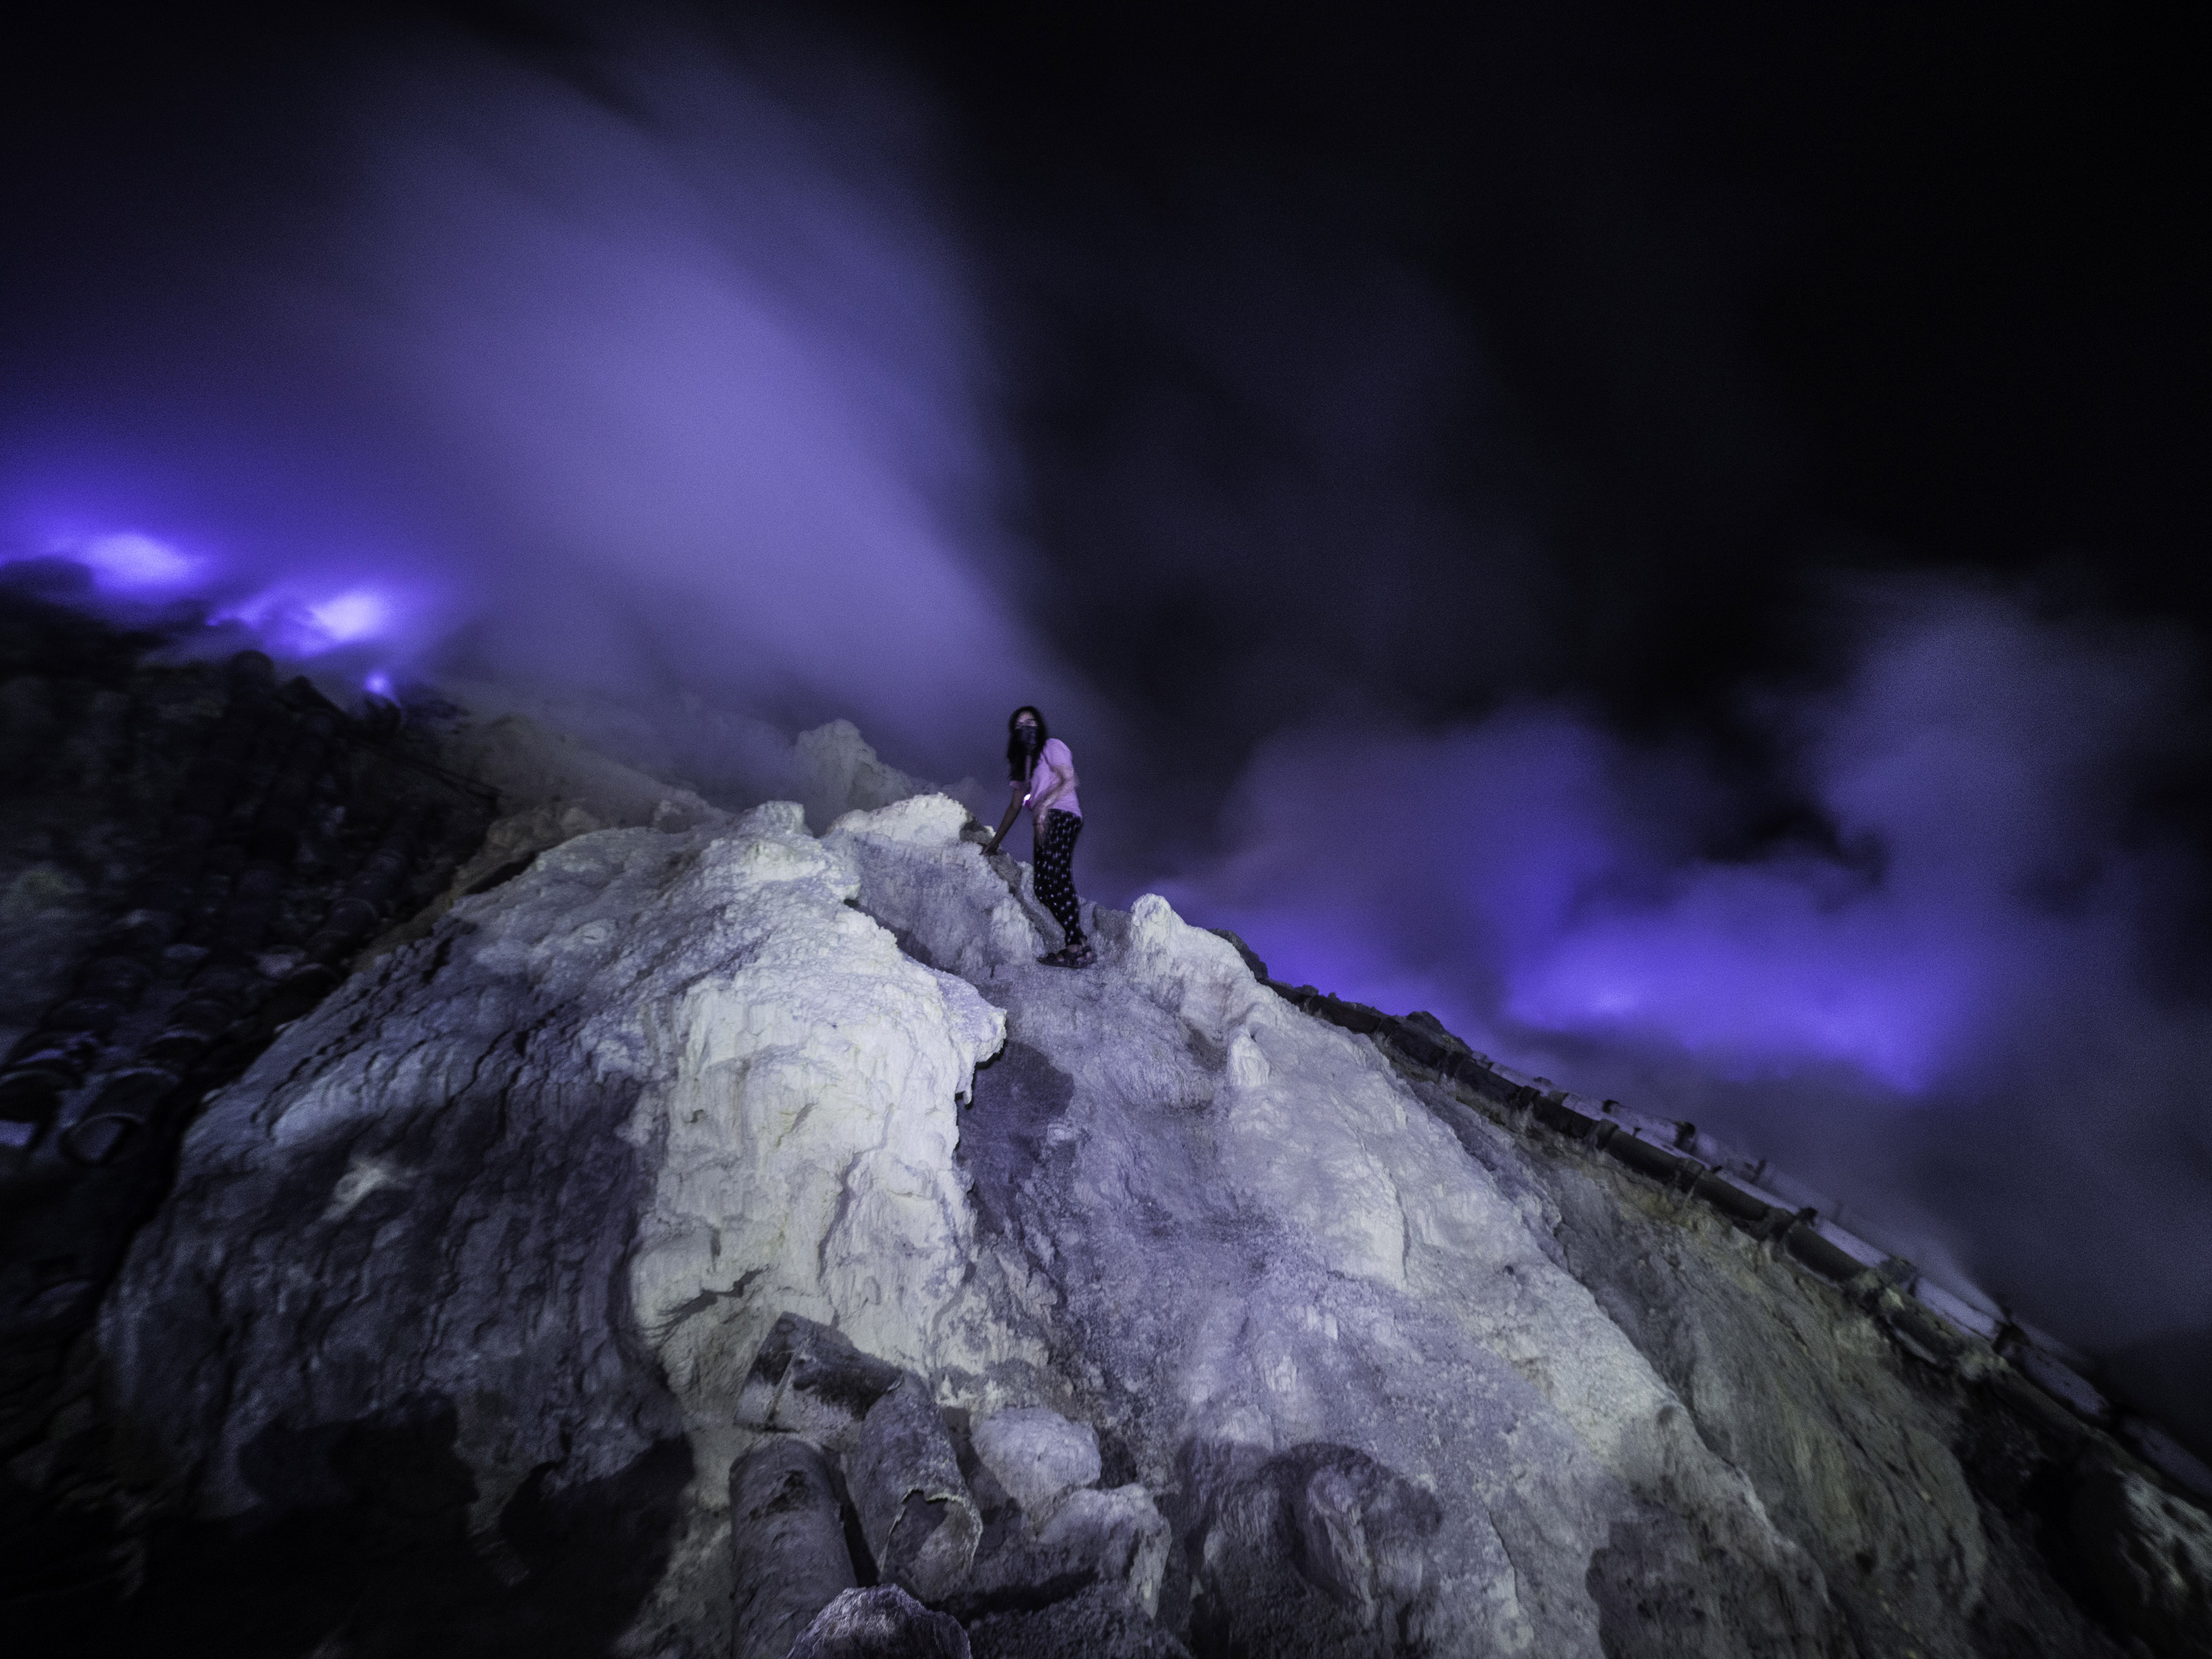 brave photographer scales volcano and battles fumes to